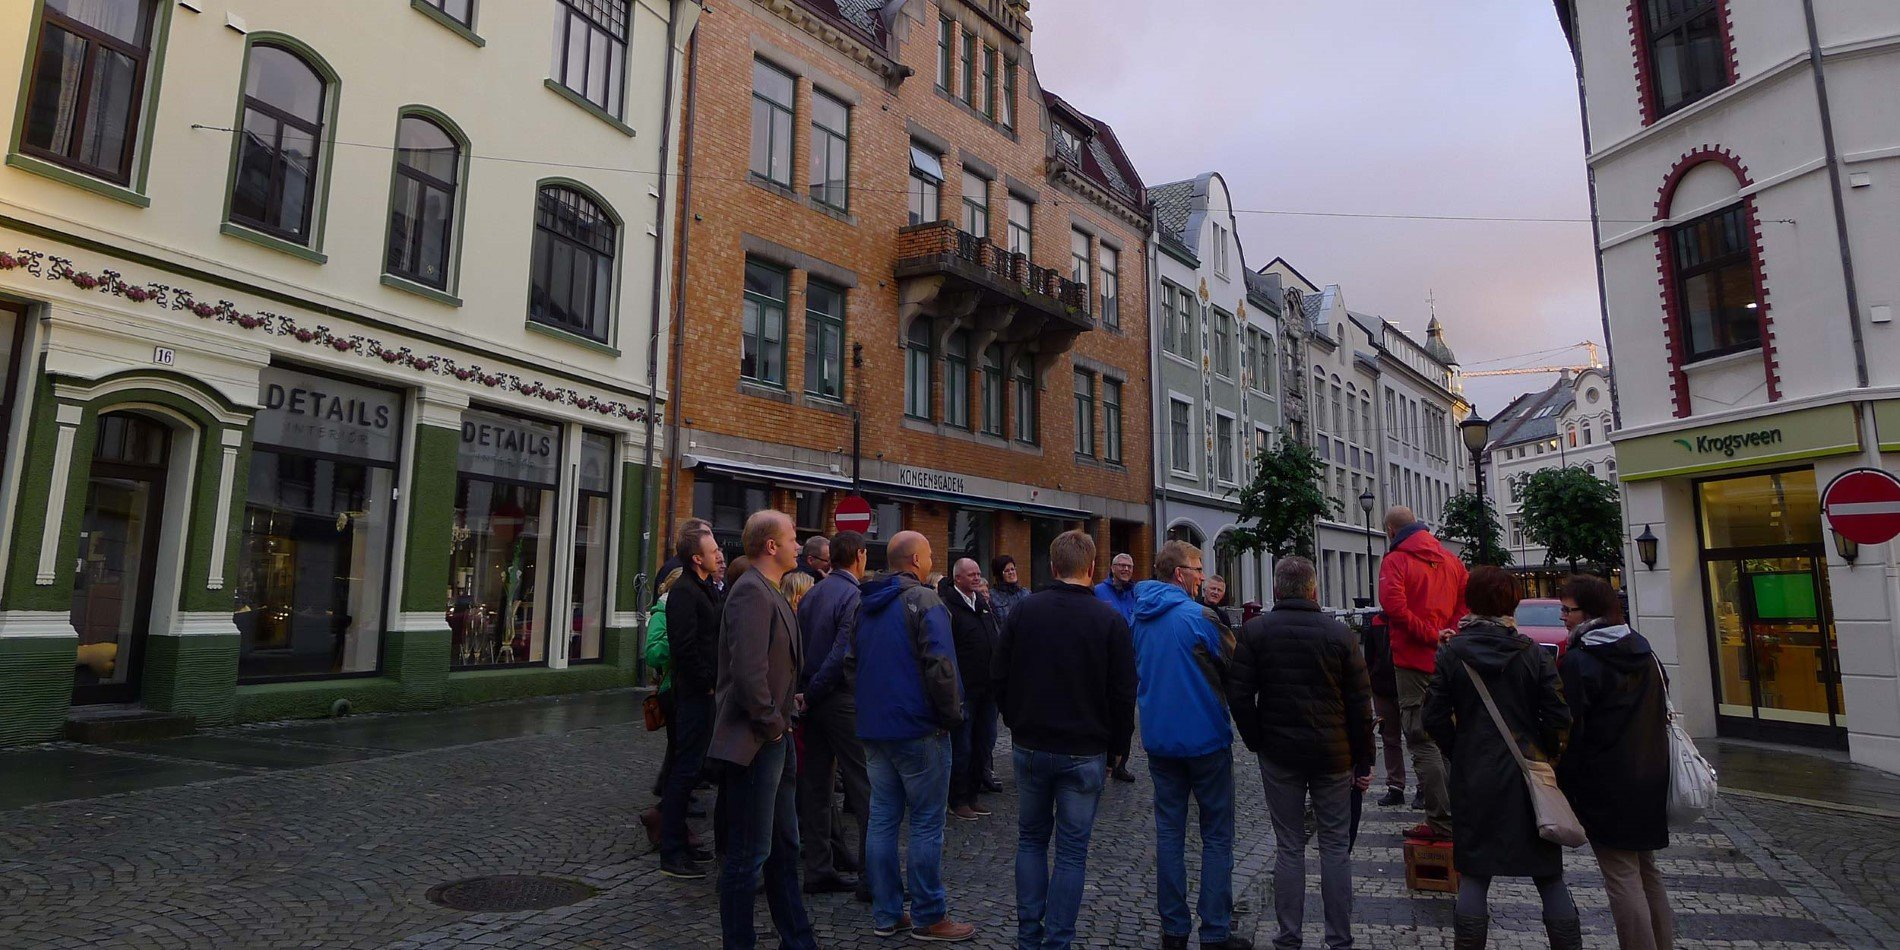 On this 2-hour walk you will see the architecture of Ålesund and hear the story behind it